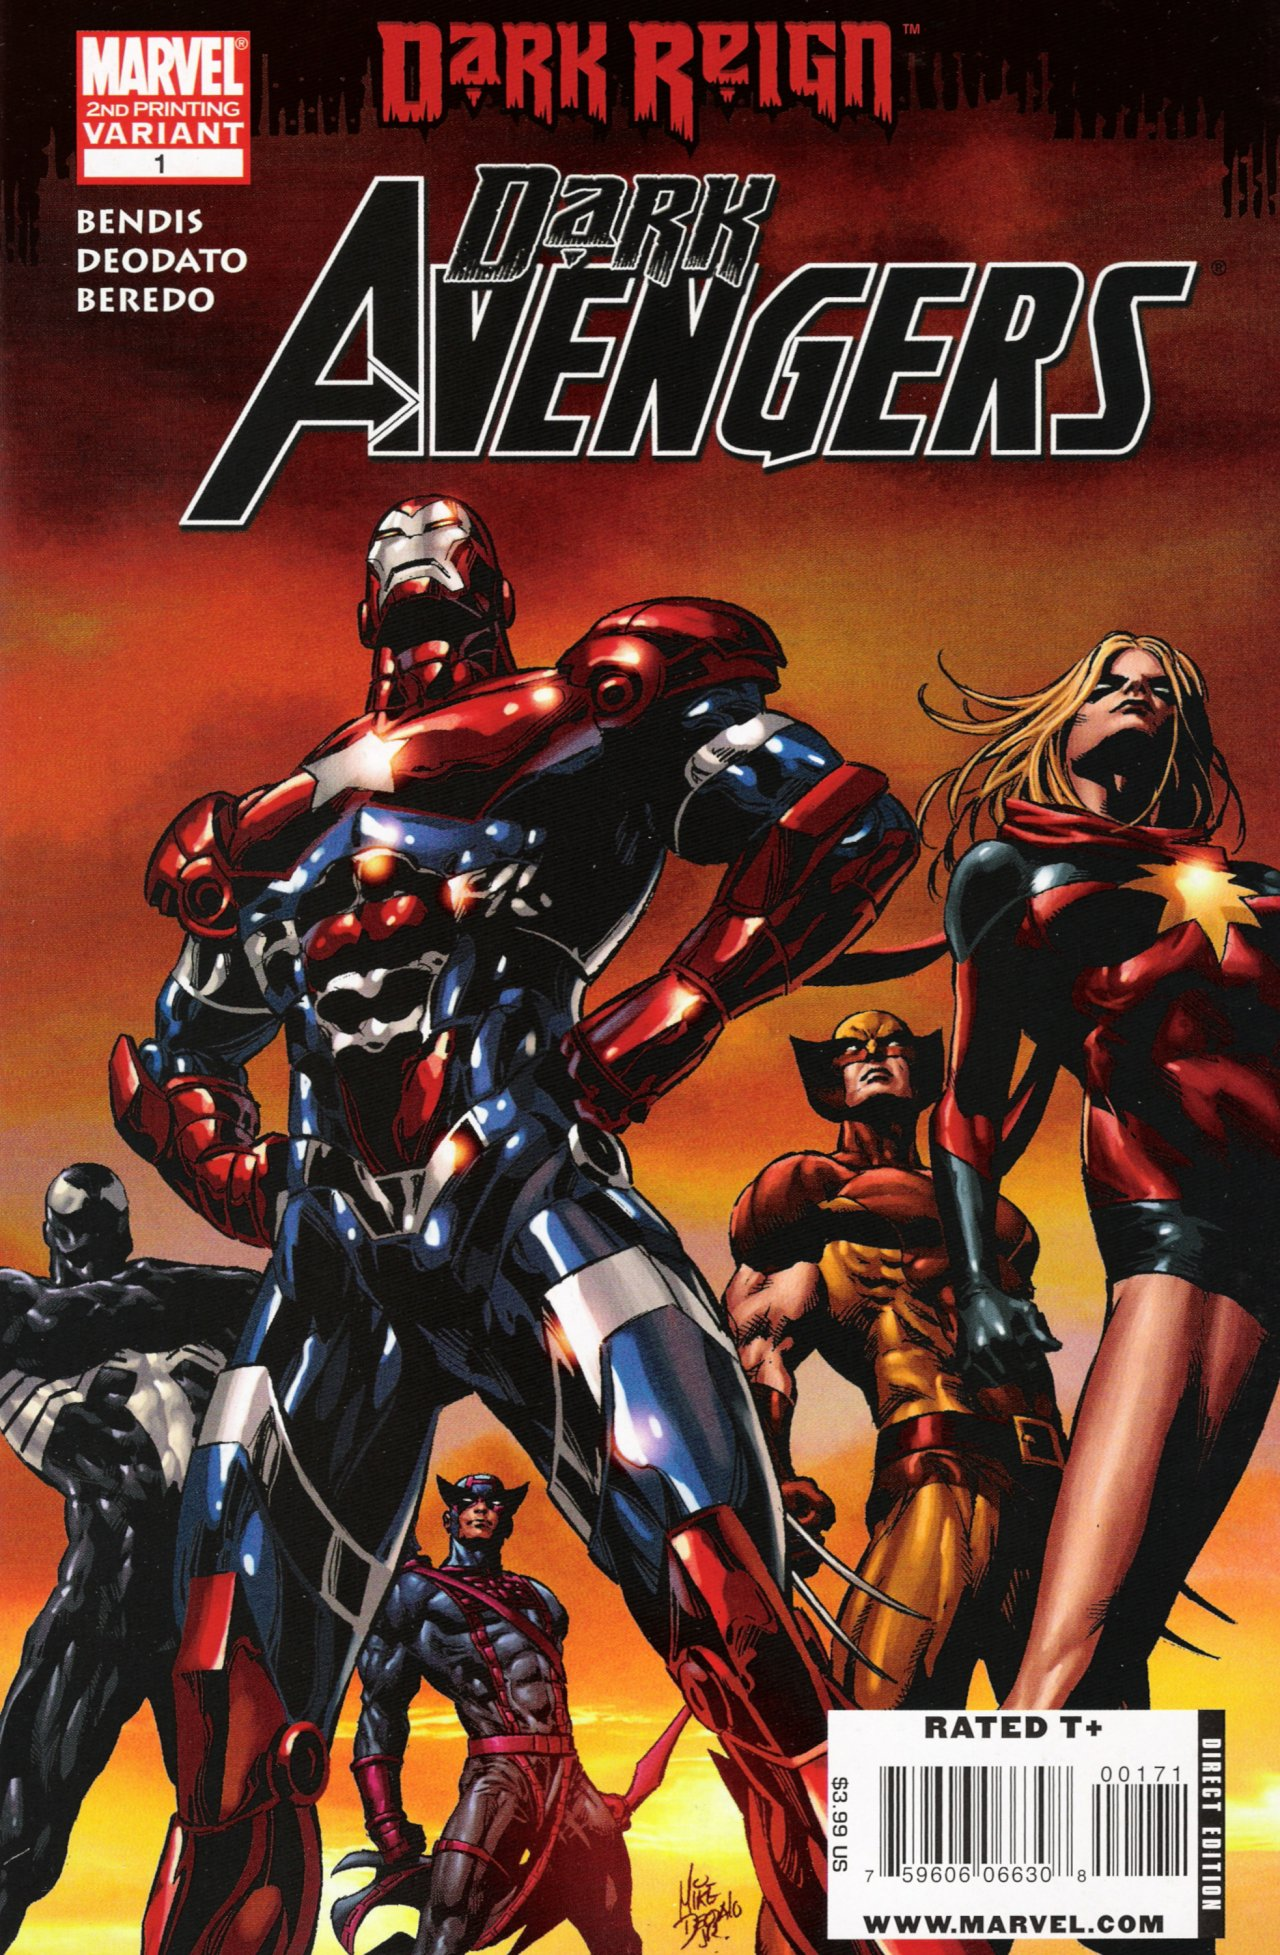 FOR SALE: Dark Avengers #1 & Other Titles